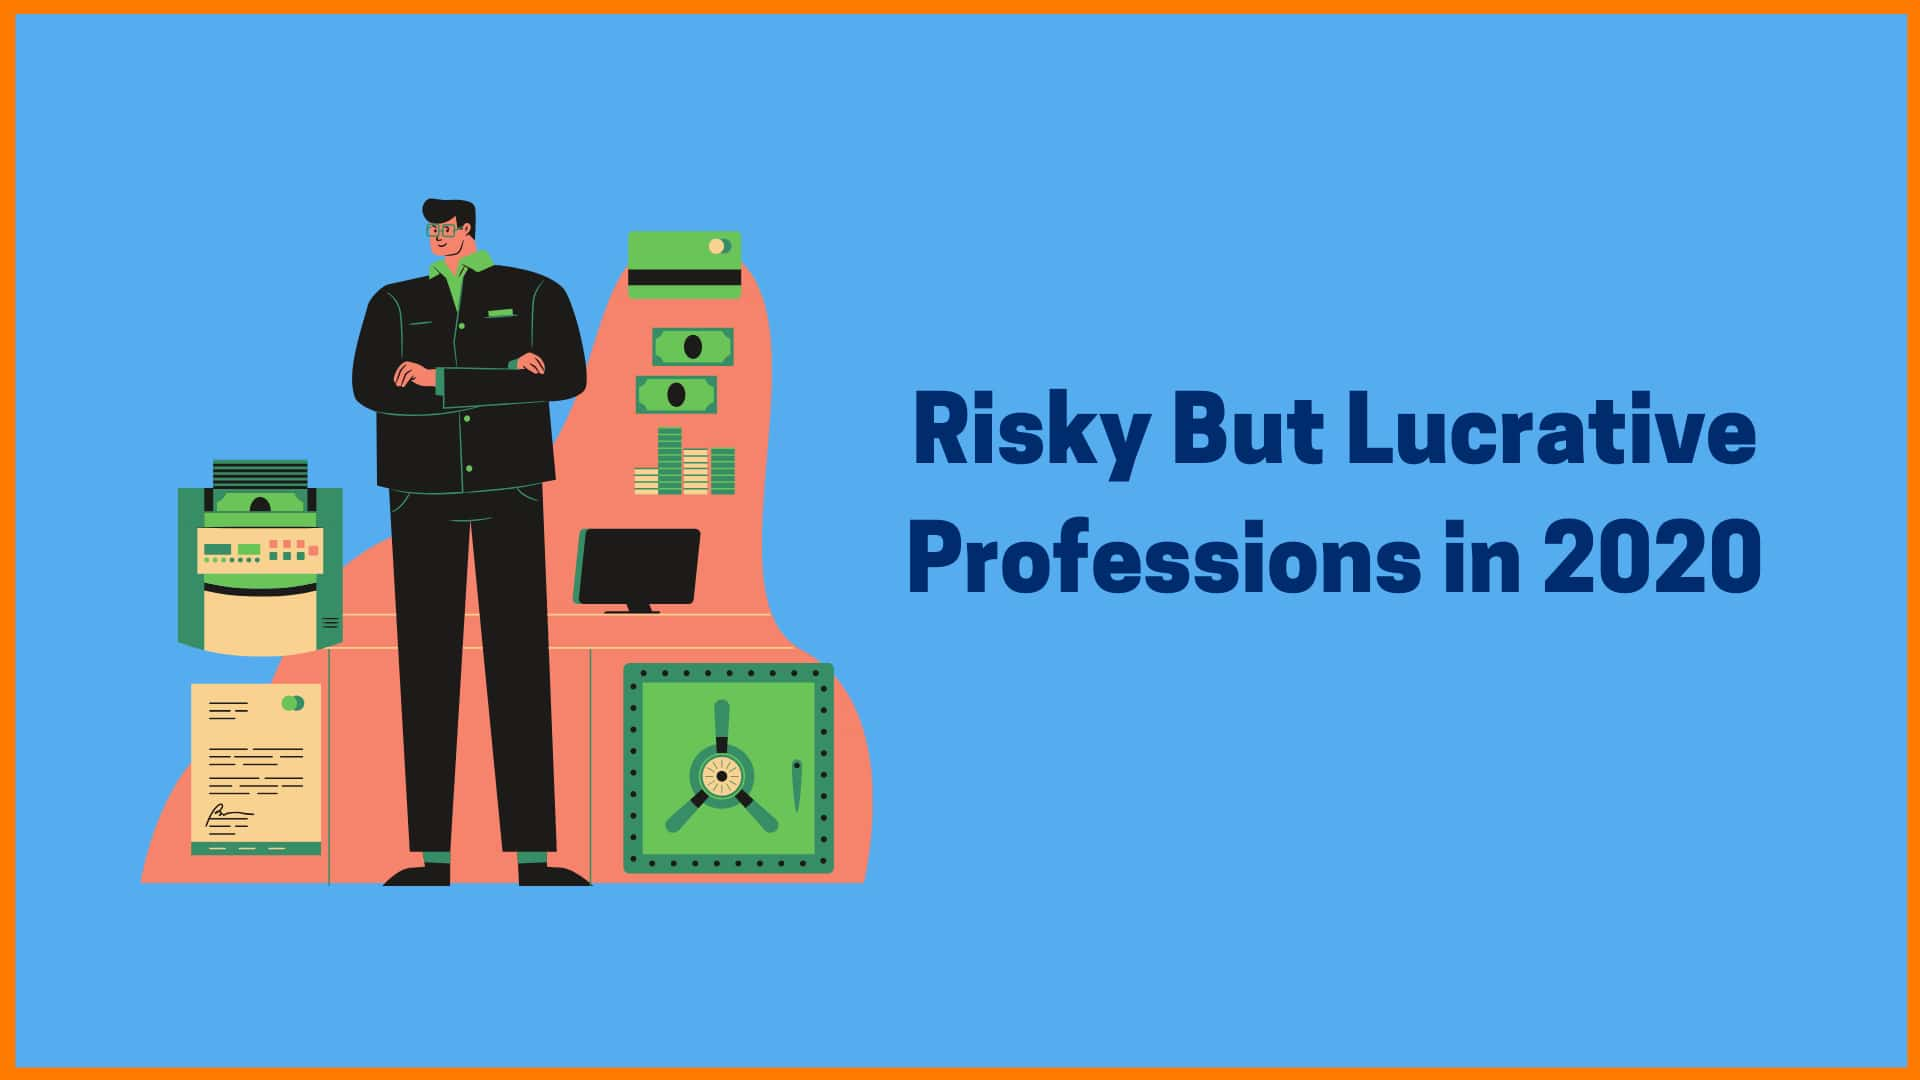 8 Risky But Lucrative Professions in 2020